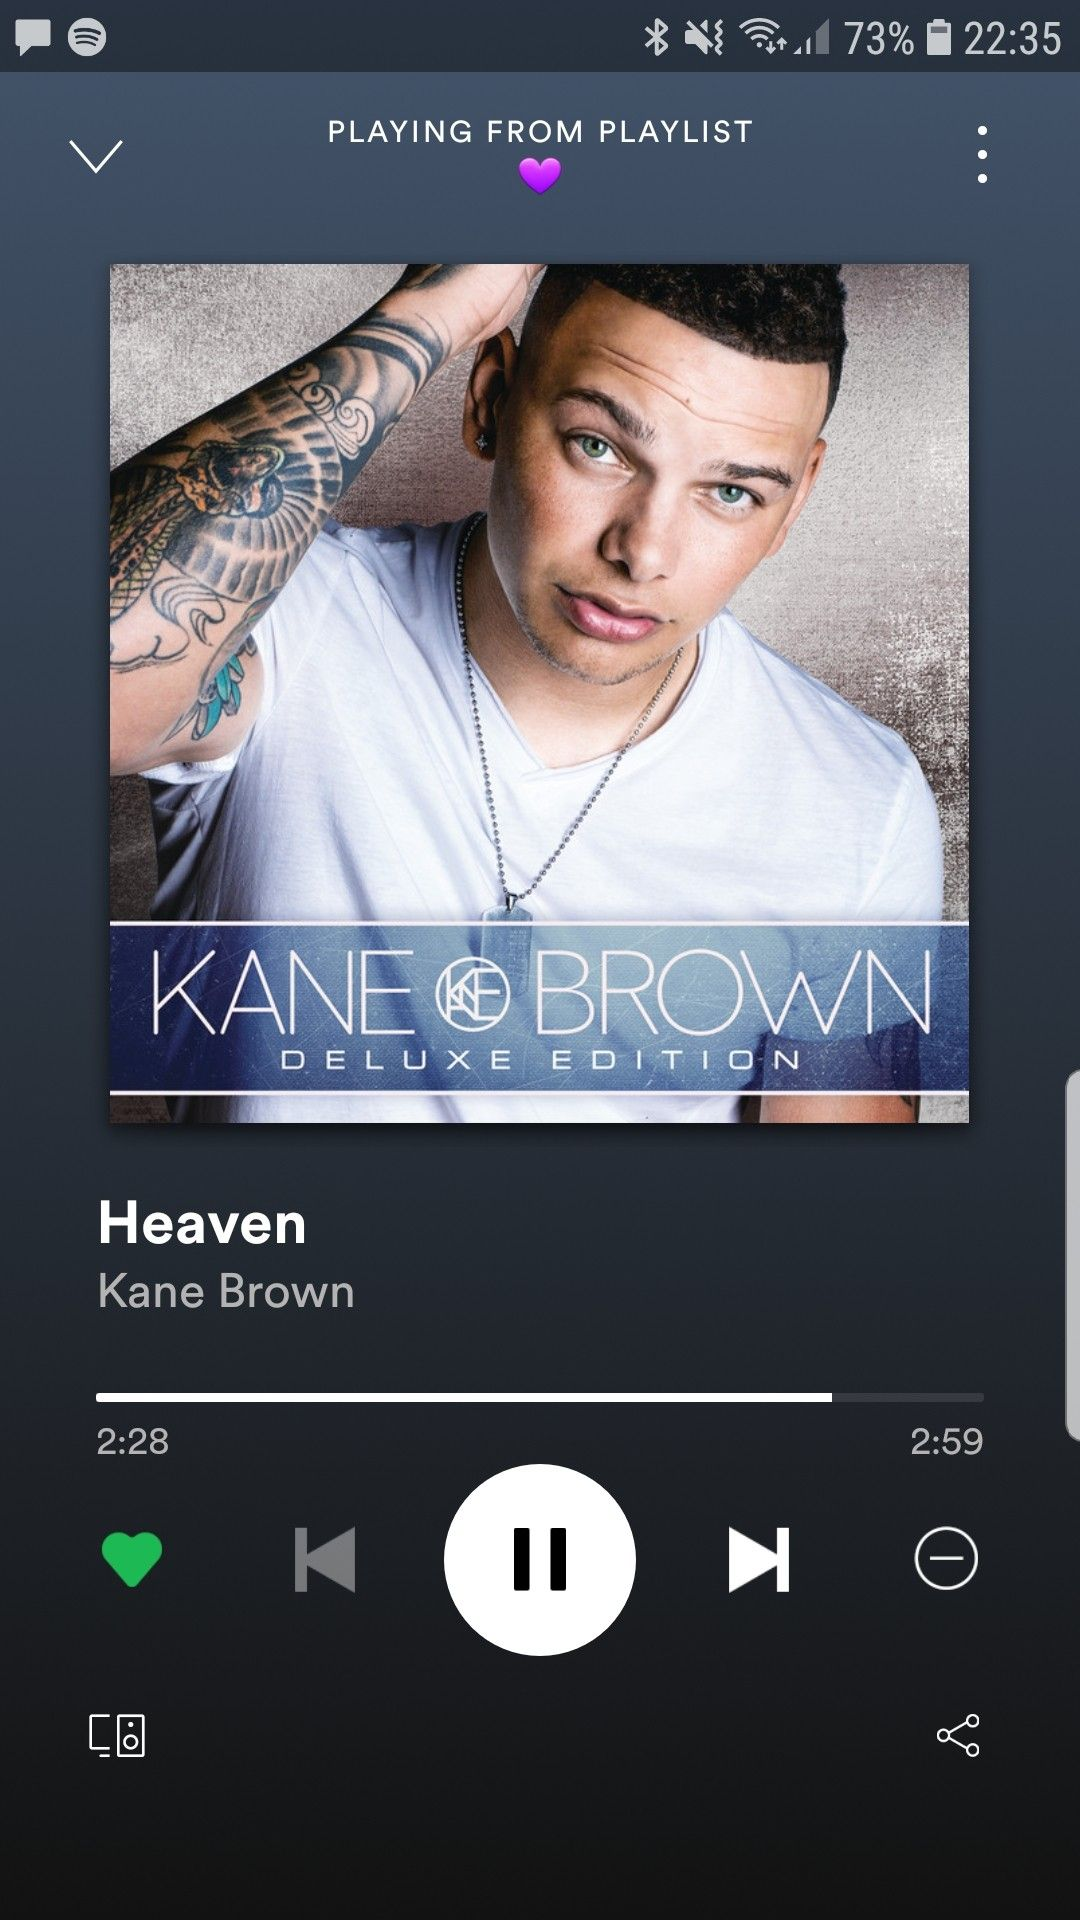 Pin by Fiona Thea on Music and Songs Songs, Kane brown